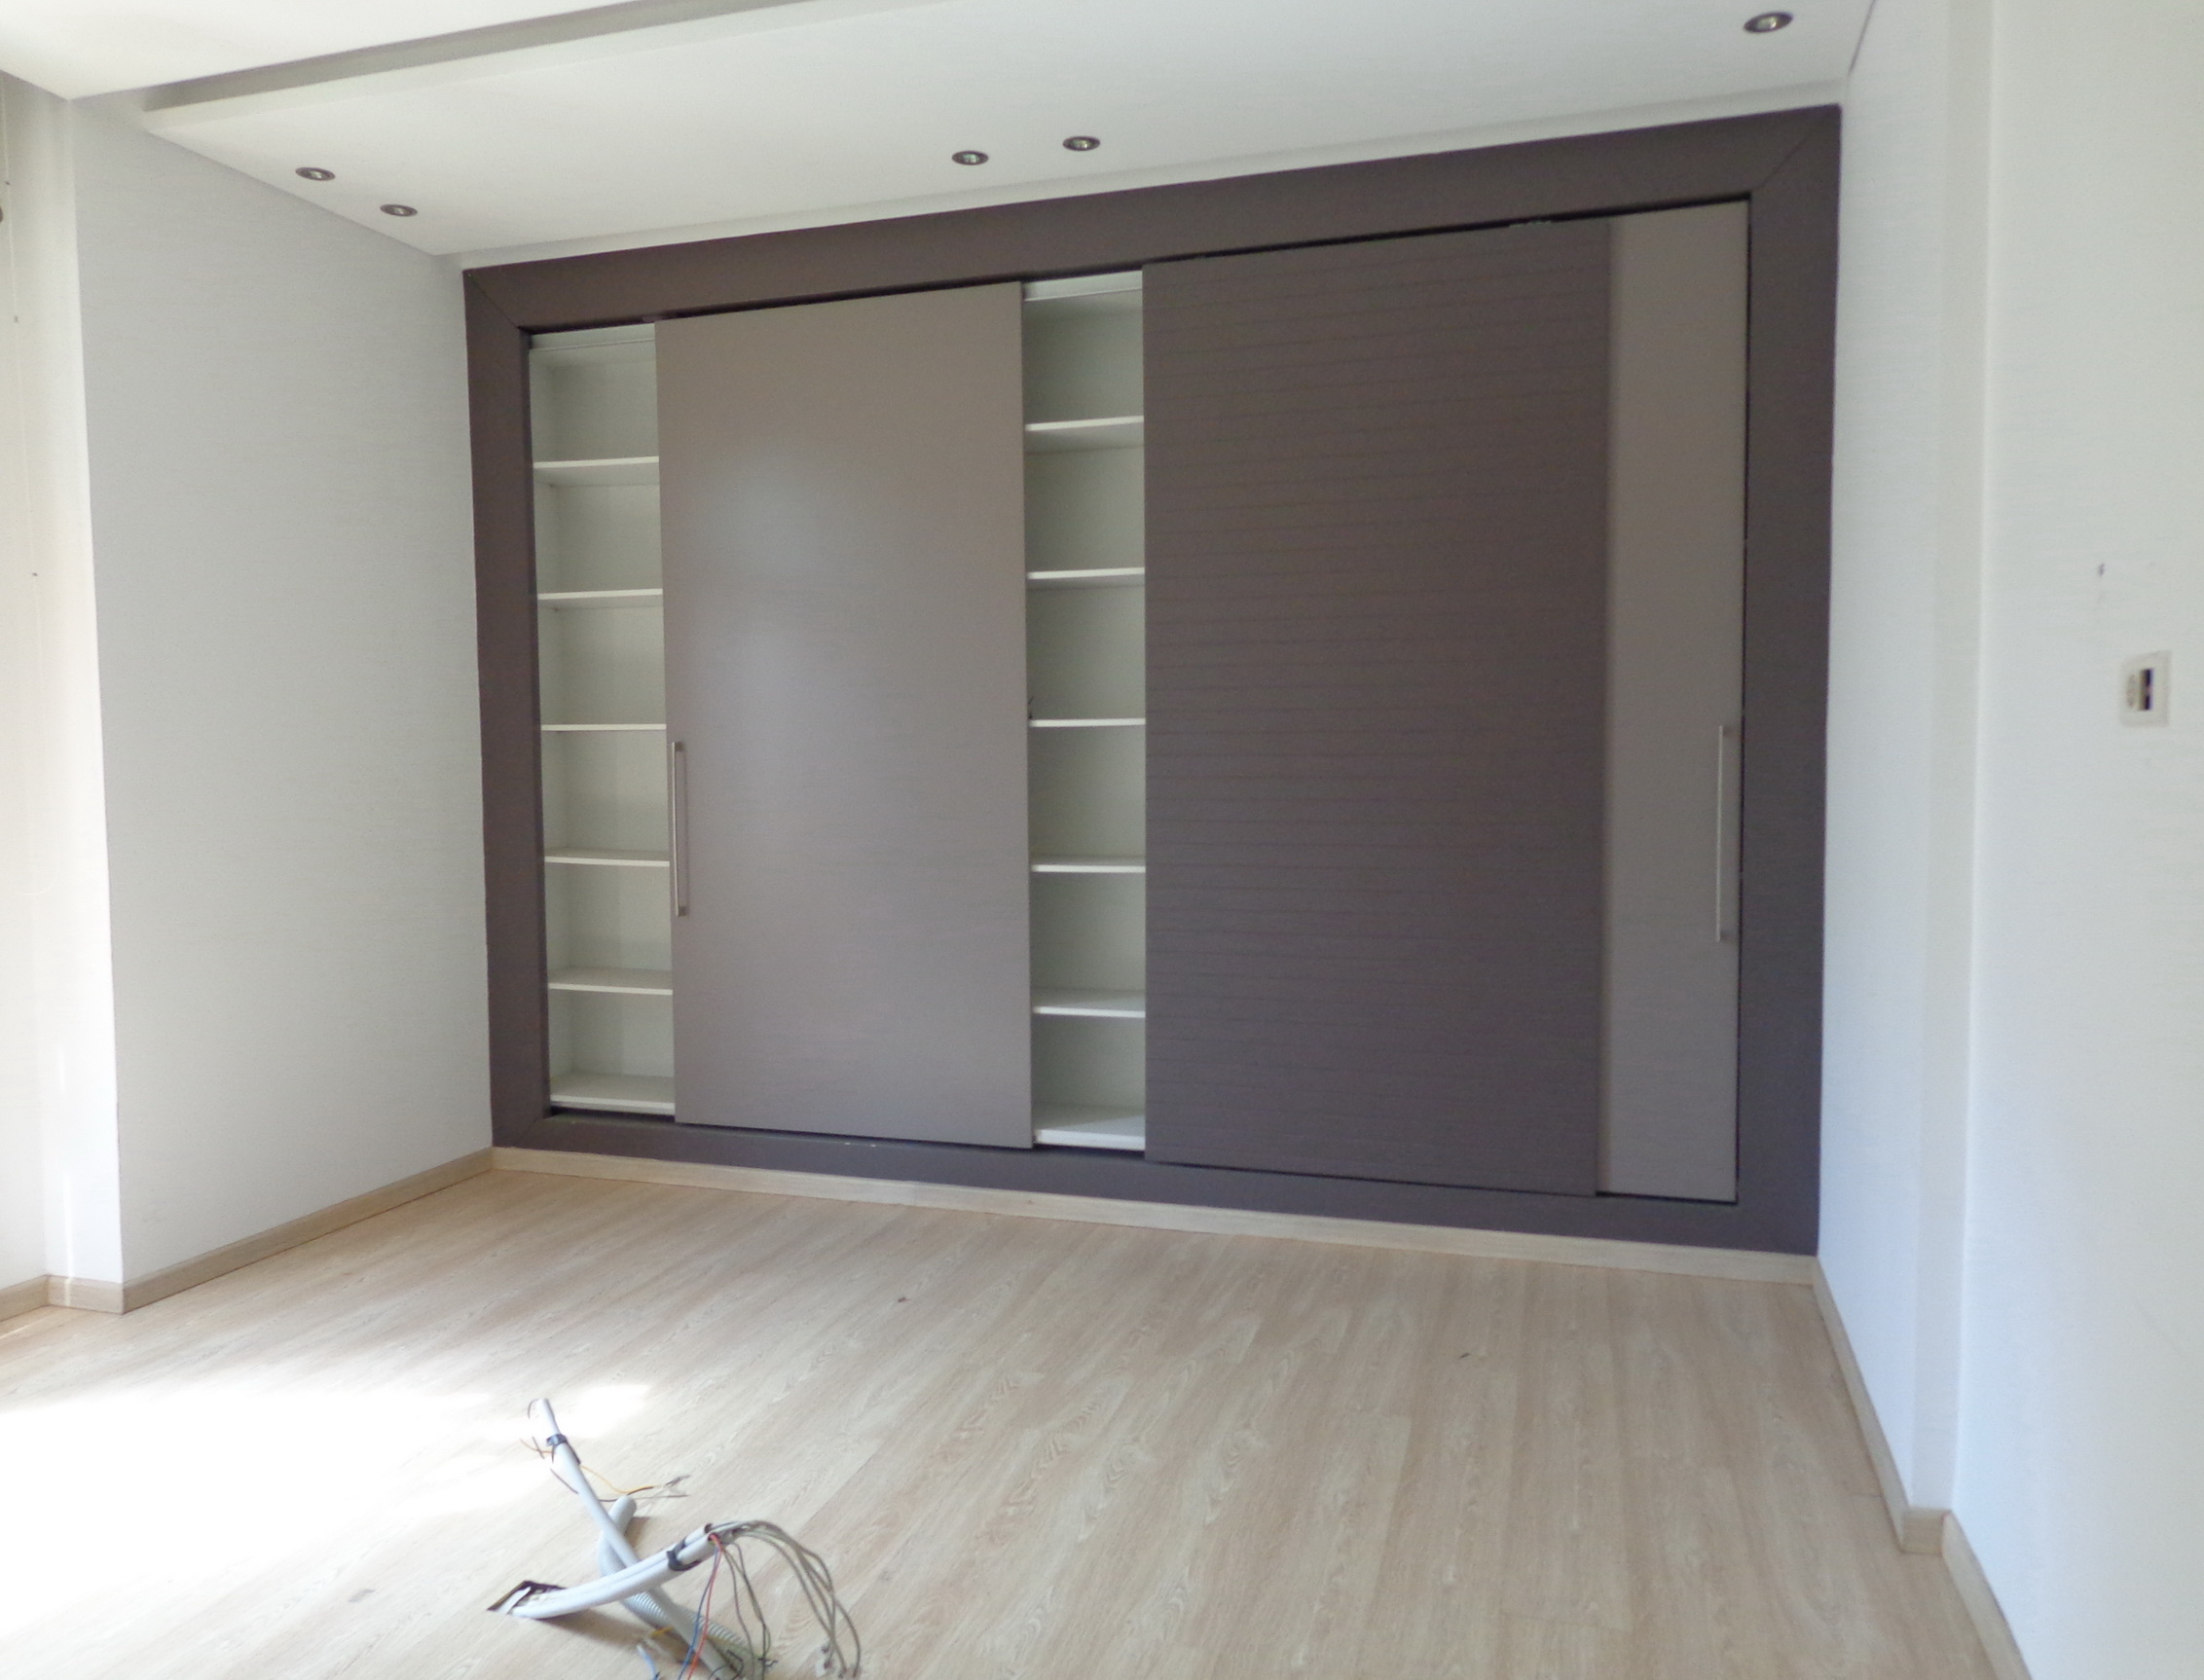 Office for Rent, Beirut Central District, 190 sqm,  36,000 USD